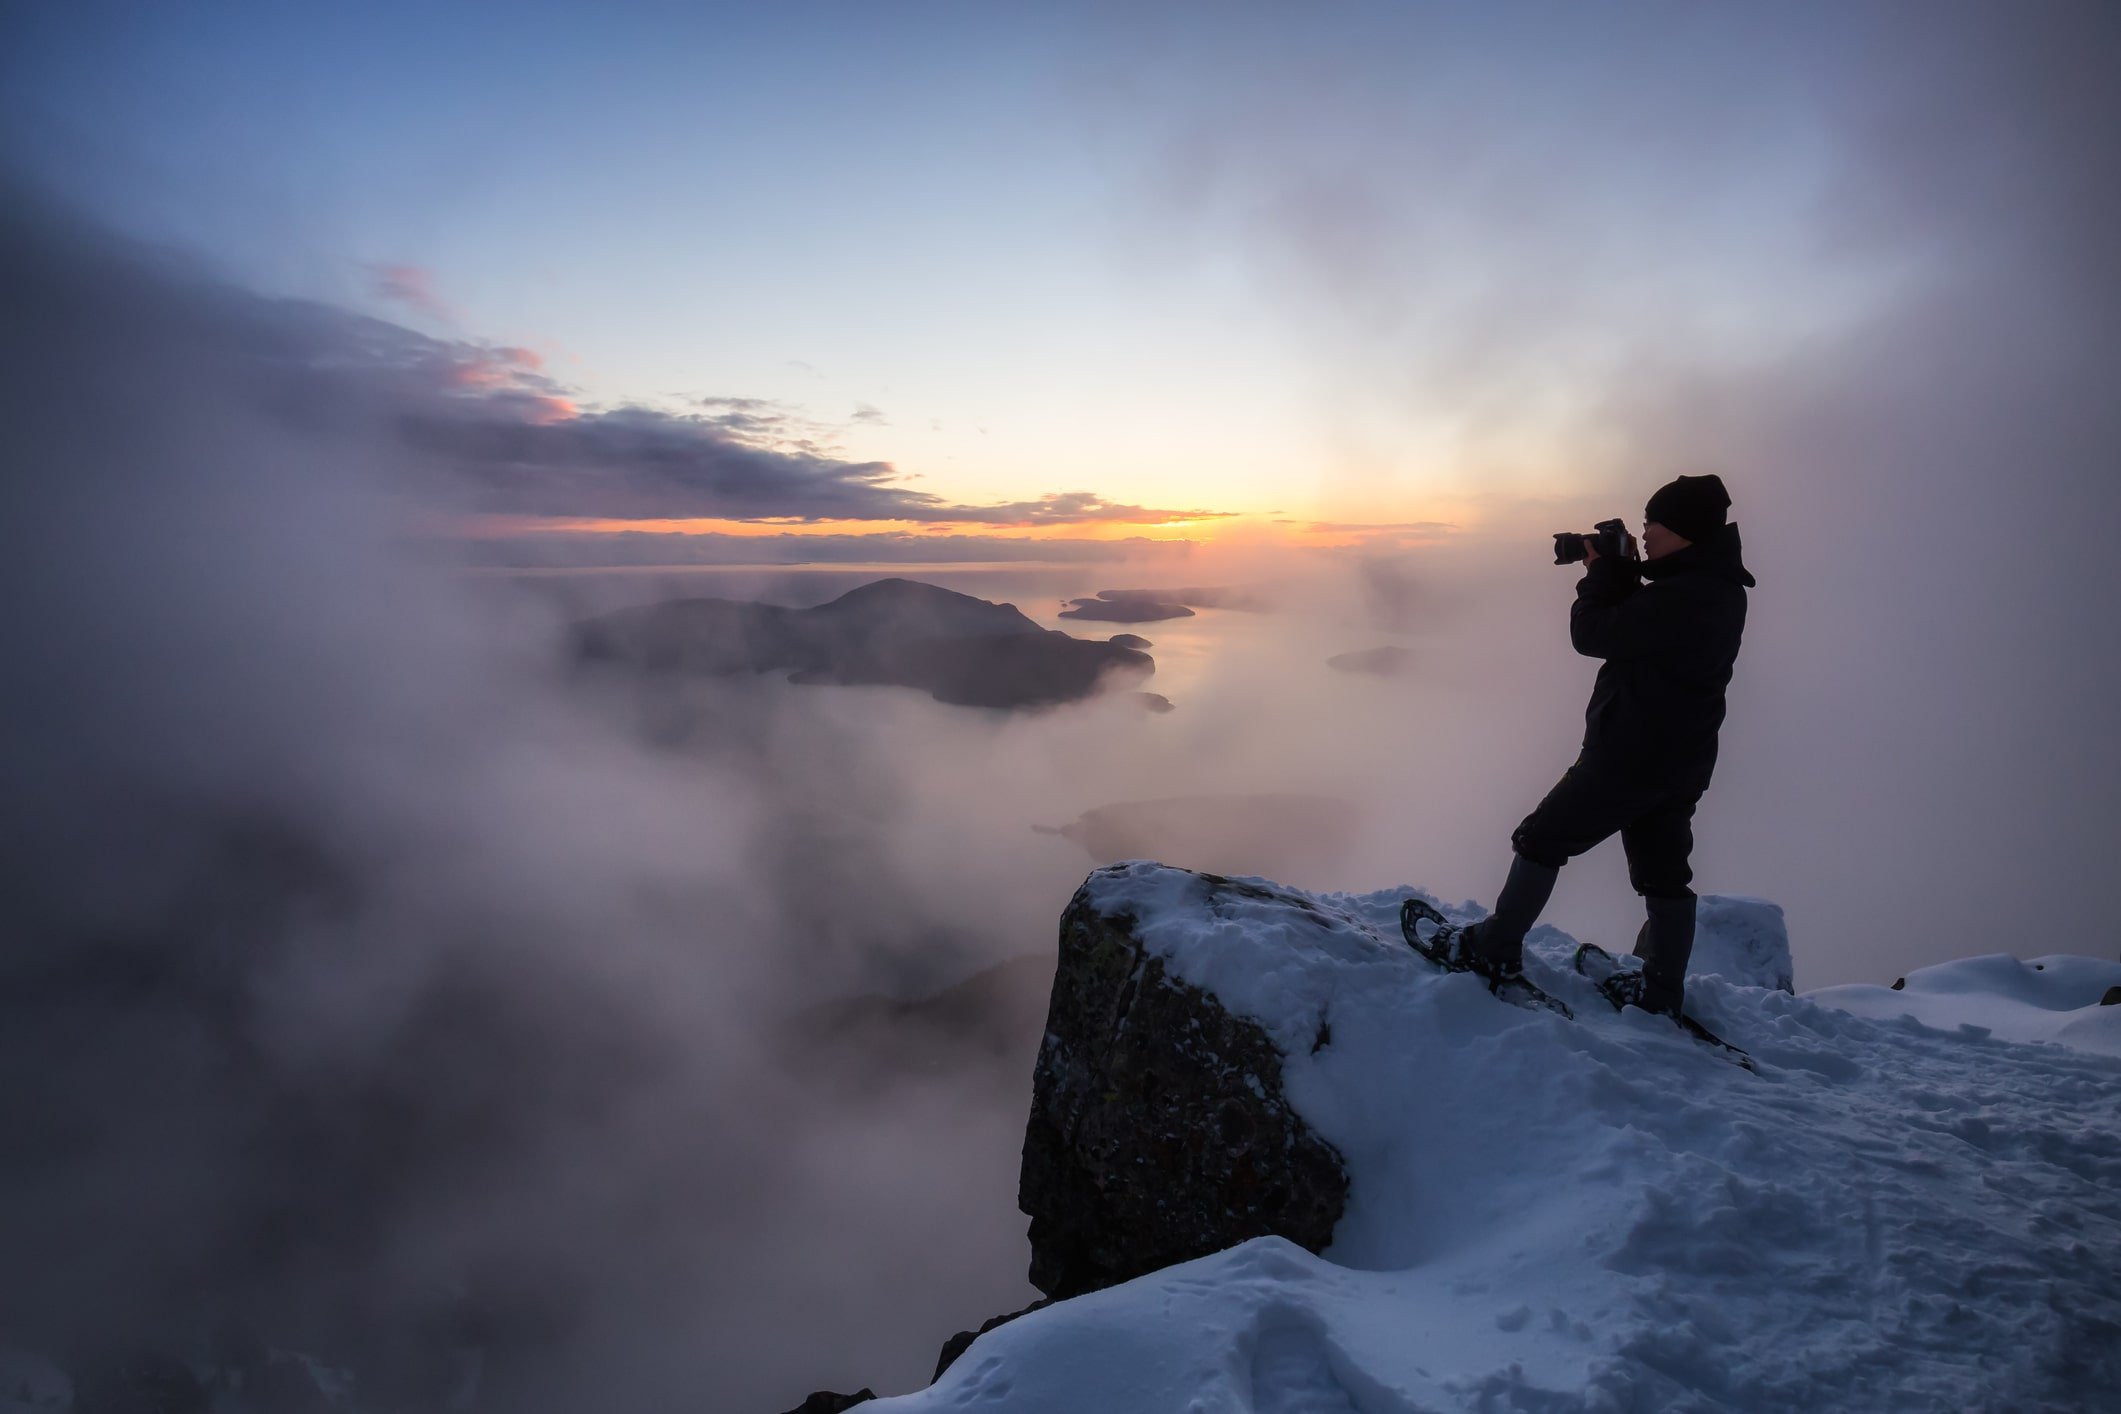 essentials of winter photography image